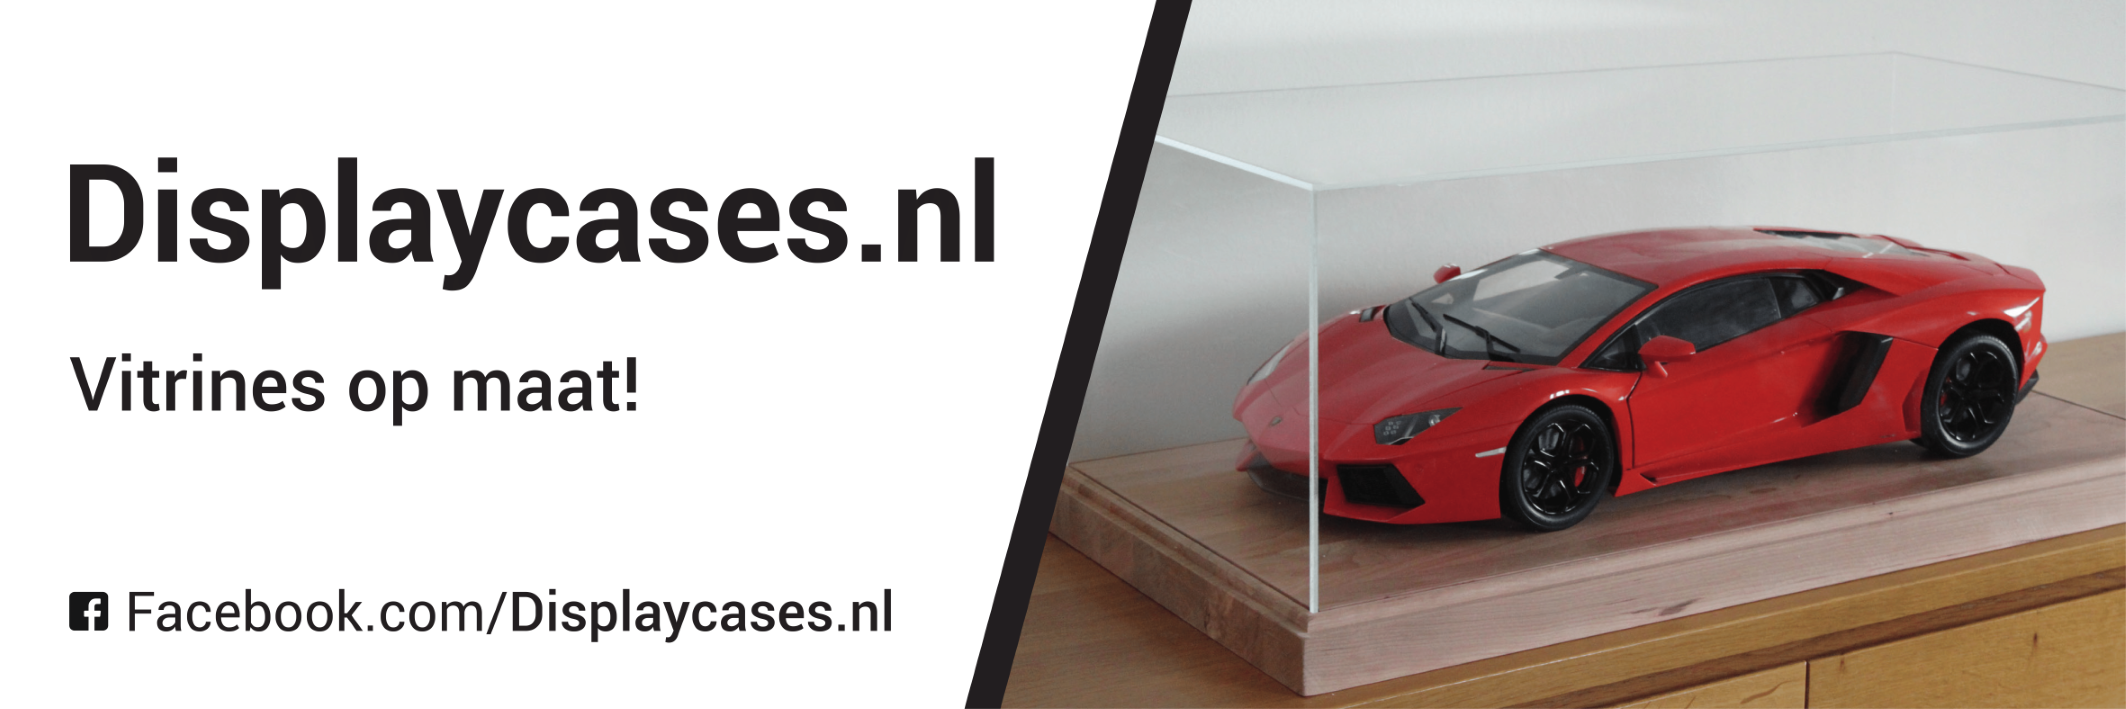 Displaycases.nl